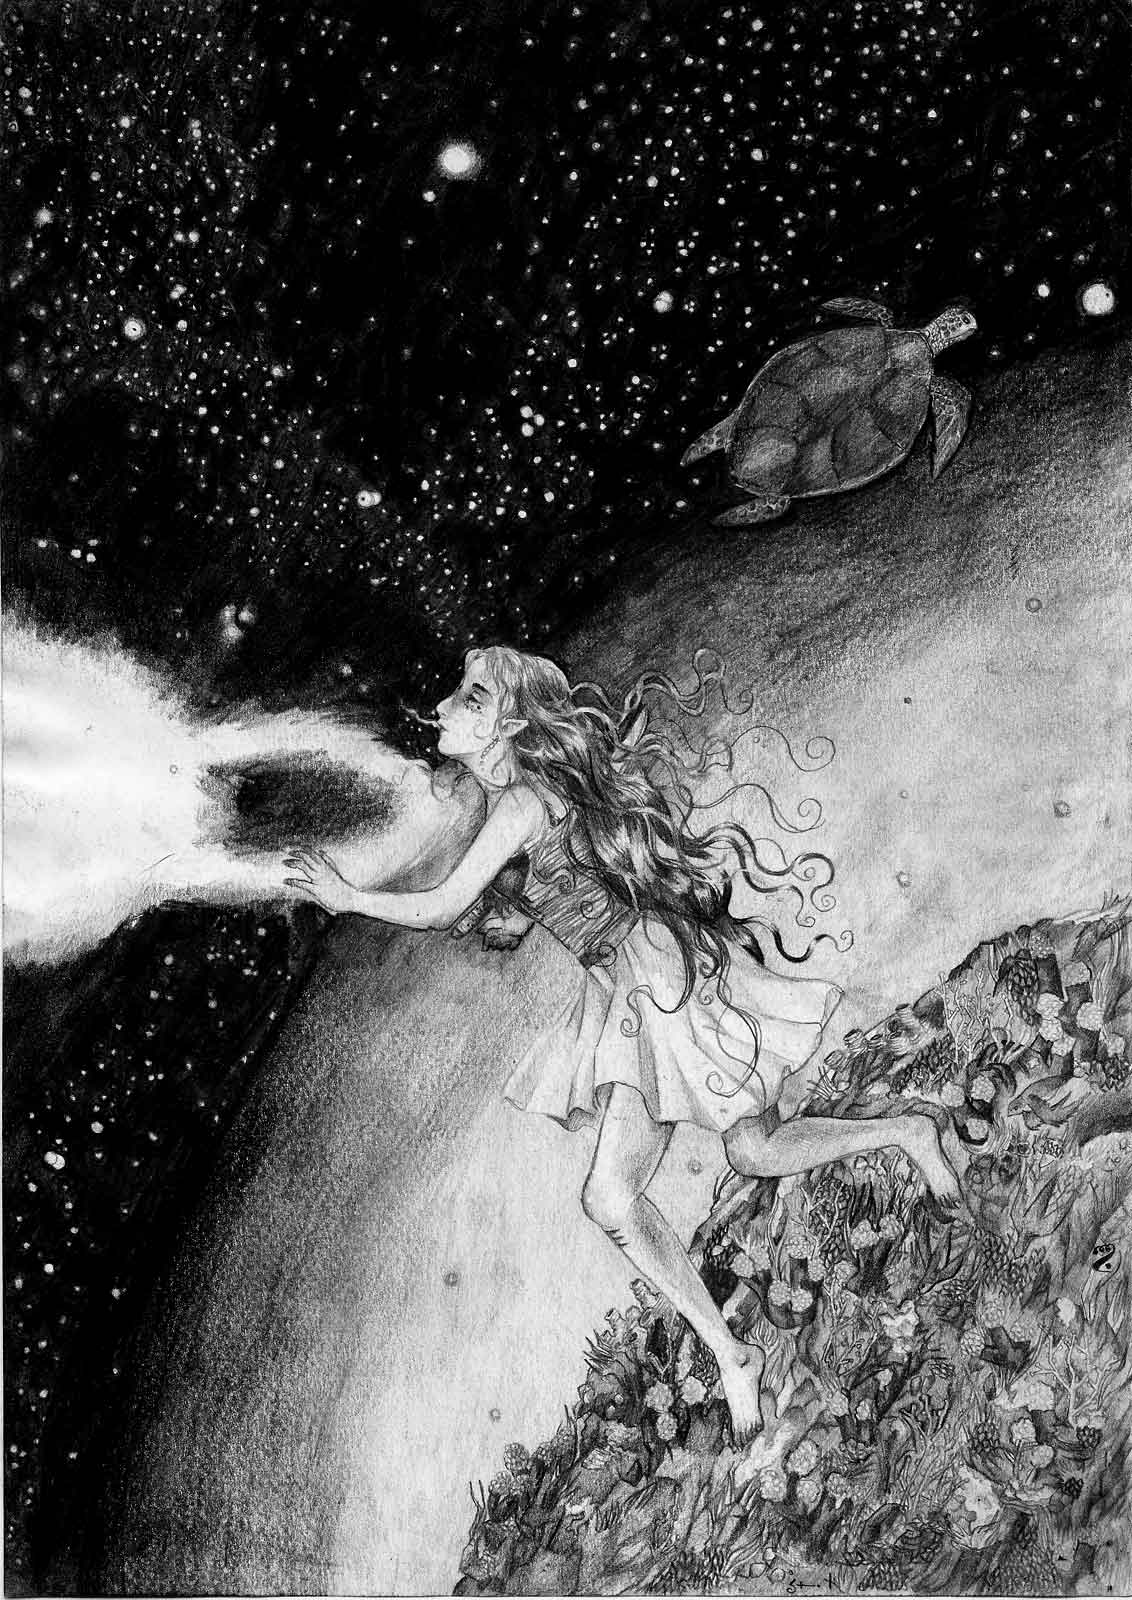 Surreal drawing of a girl with a knife in her chest floating in the cosmos near a planet covered in vegetation, a sea turtle passing by in the background.